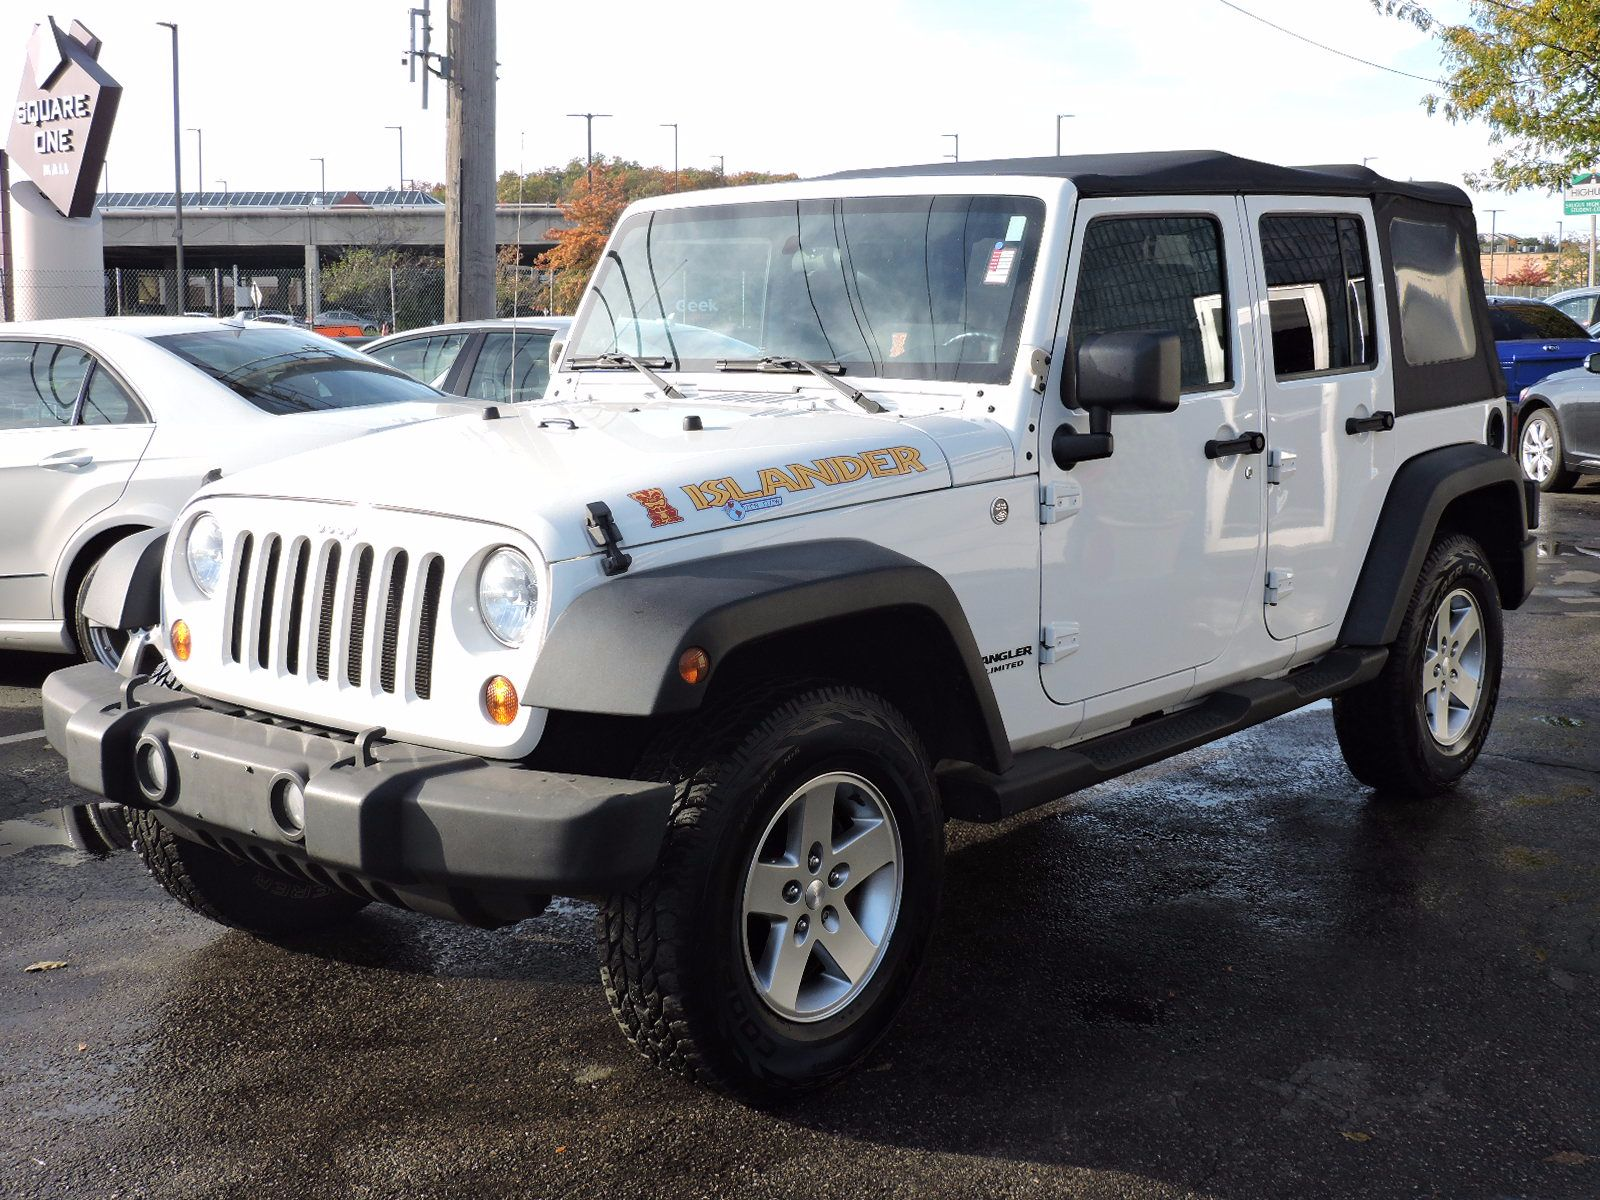 2010 Jeep Wrangler Unlimited - All Wheel Drive - Unlimited - Islander Edition